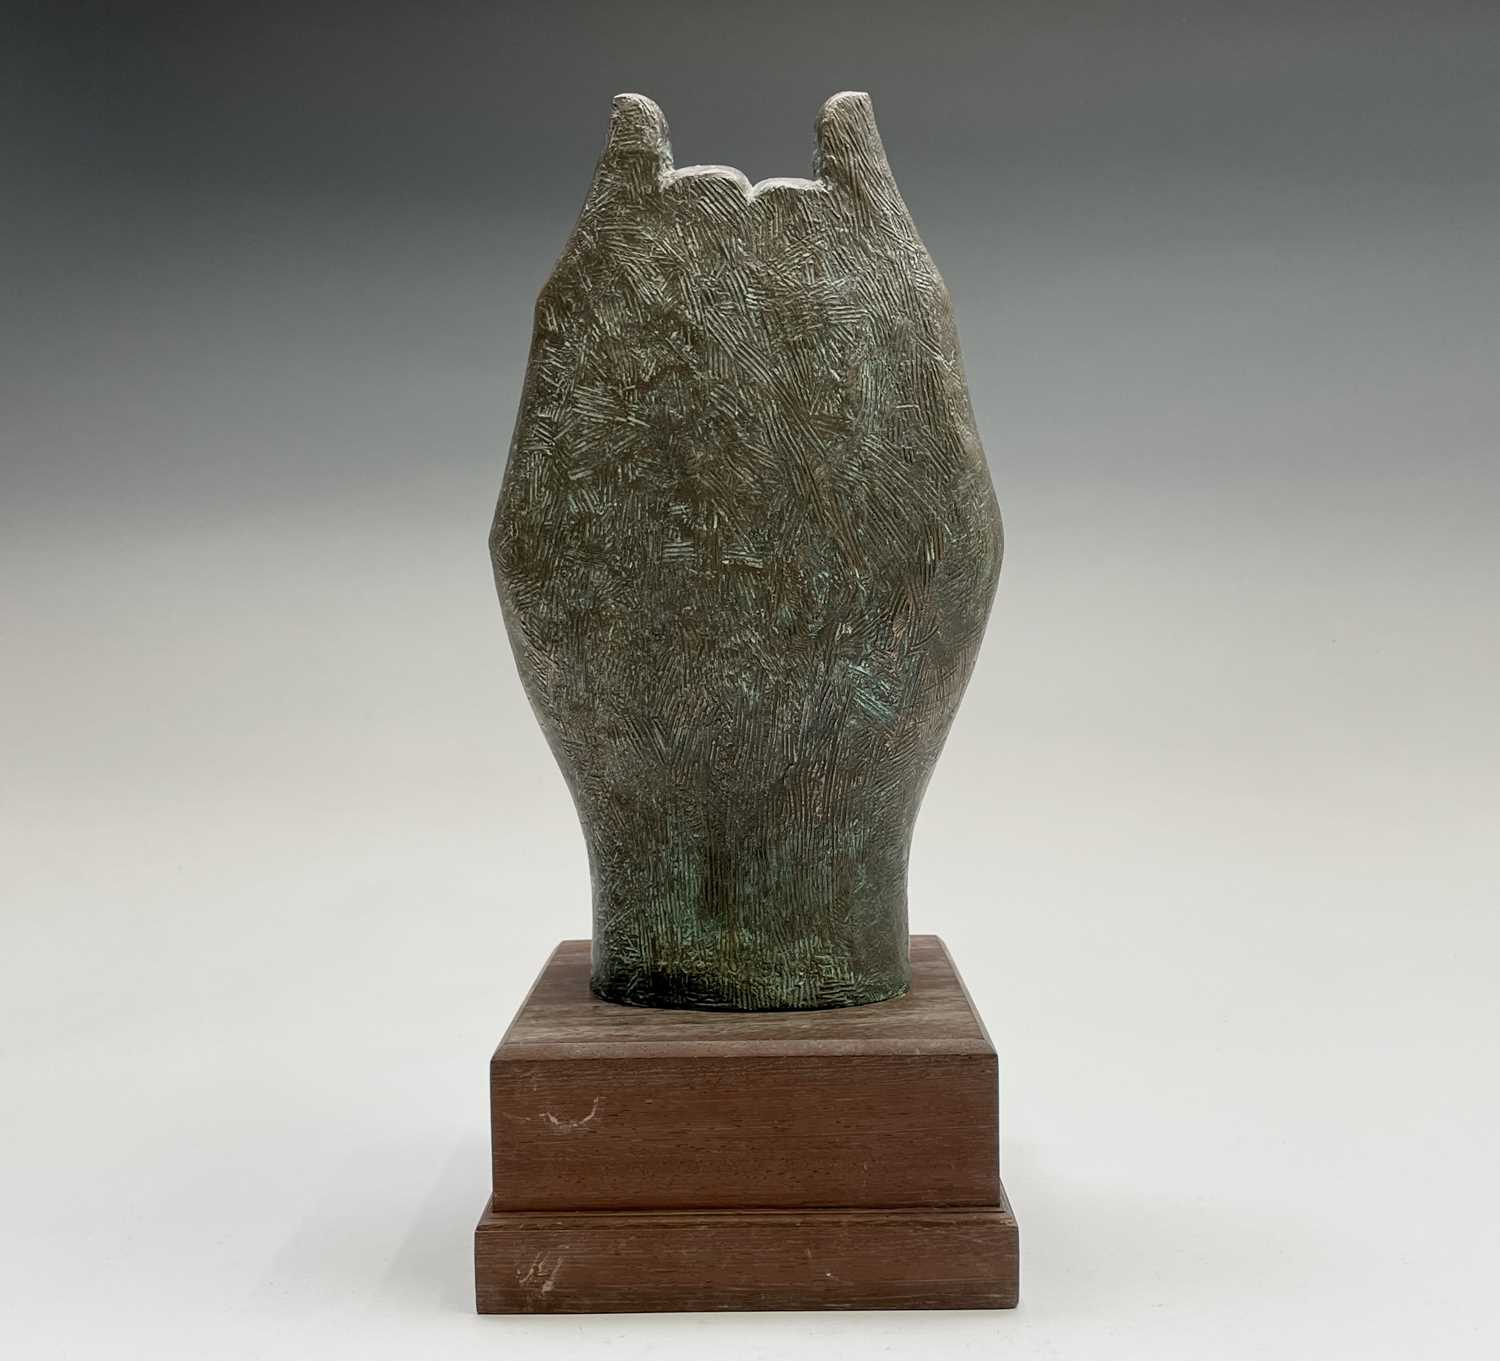 Alec WILES (1924)Hands Cold cast bronze sculpture Signed Height 34cm including wooden base - Image 9 of 9